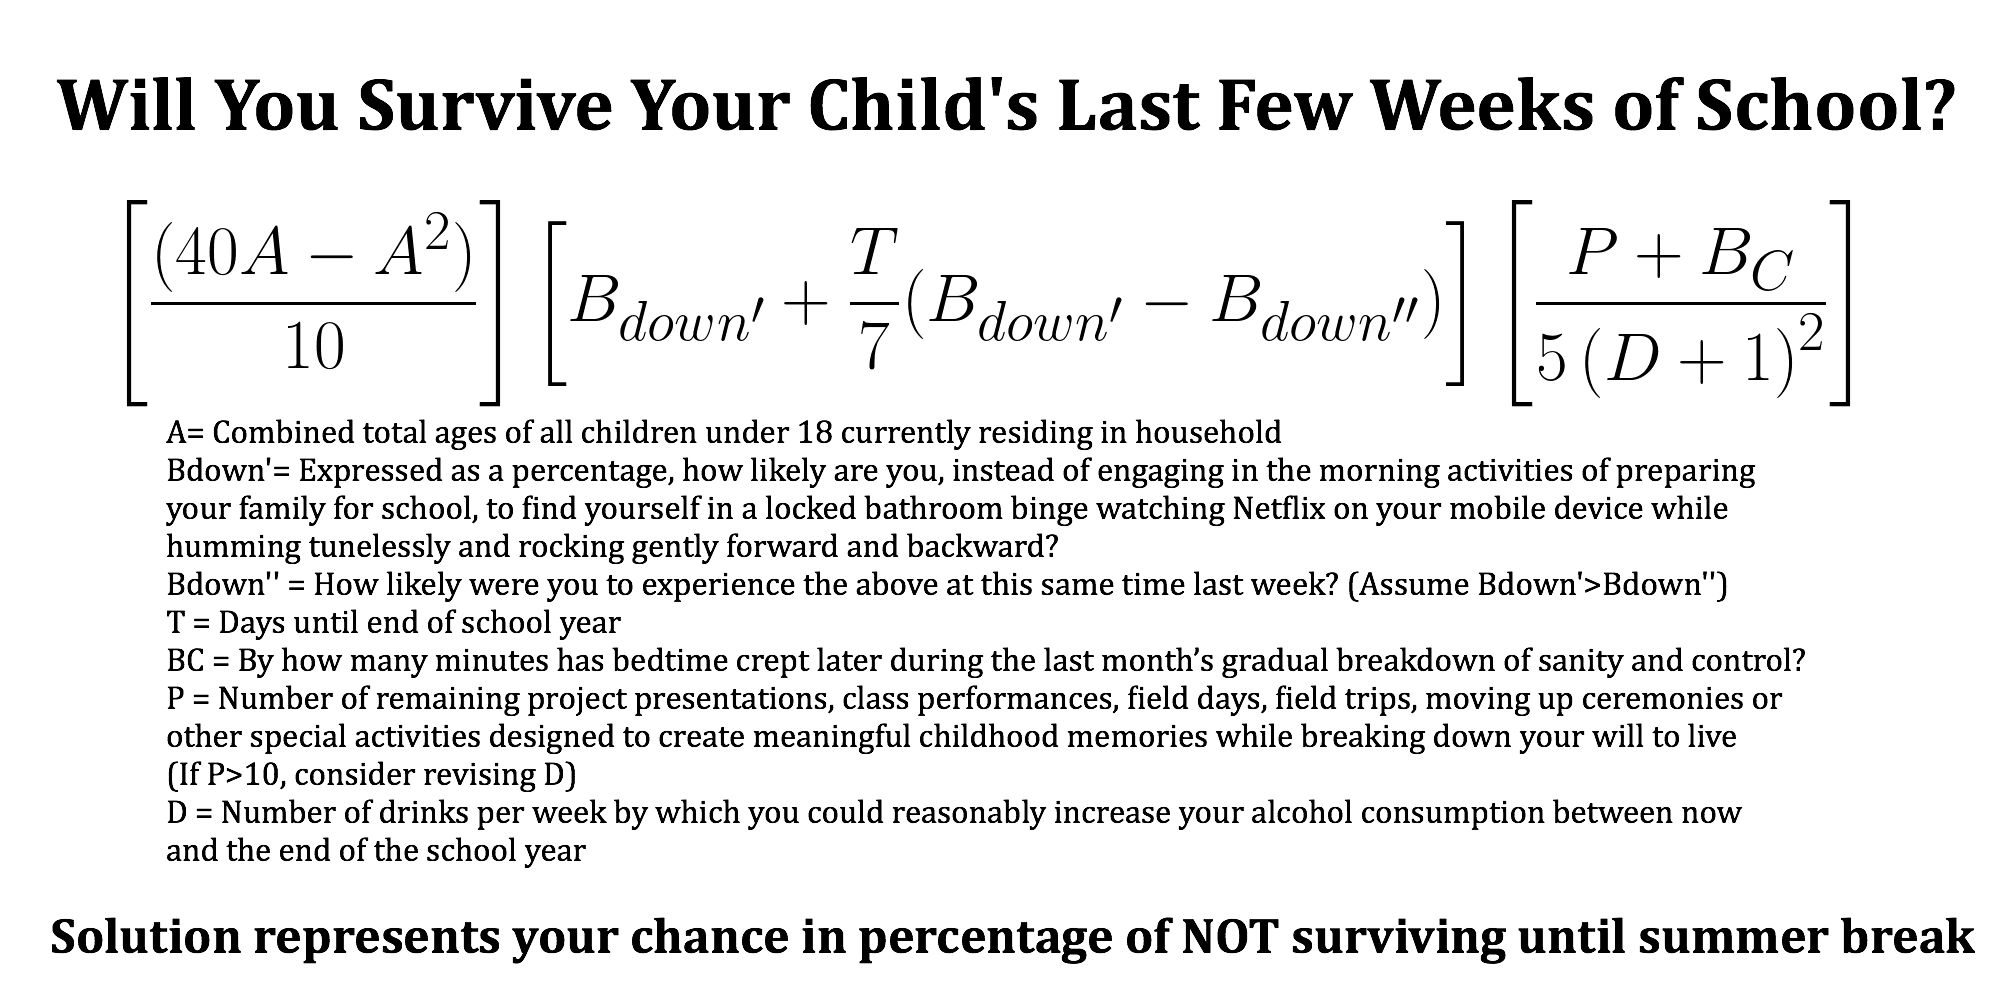 Calculate the Likelihood of Surviving Your Child's Last Few Weeks of School